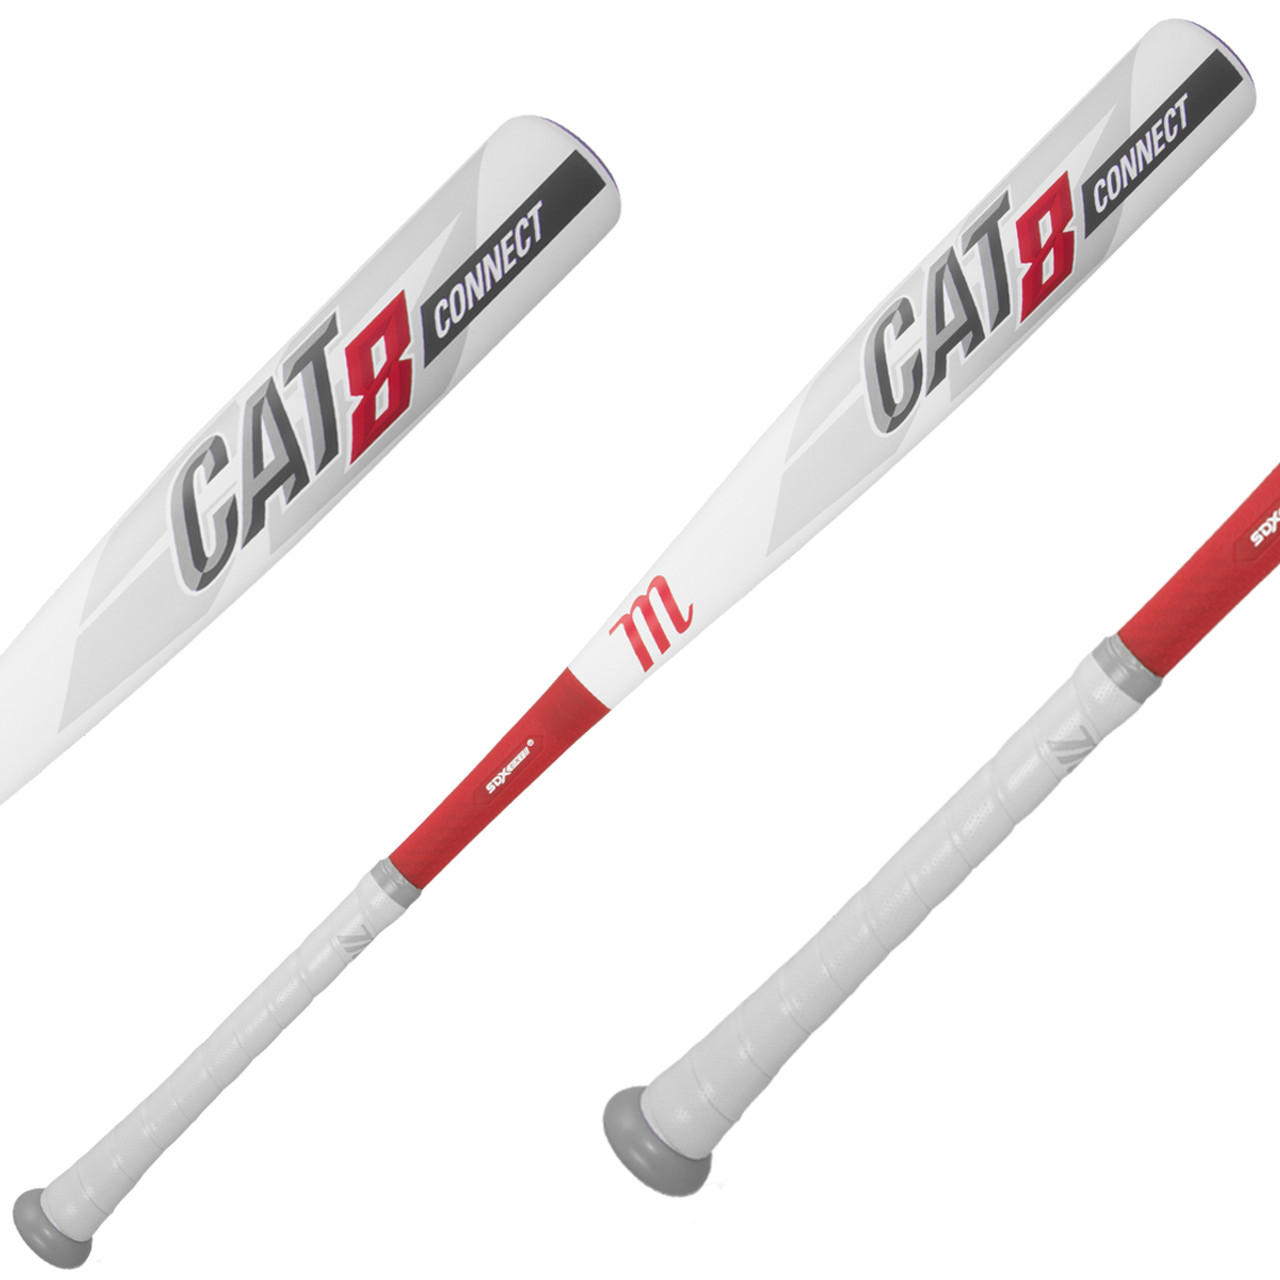 Marucci CAT8 Connect MCBCC8 -3 BBCOR Baseball Bat